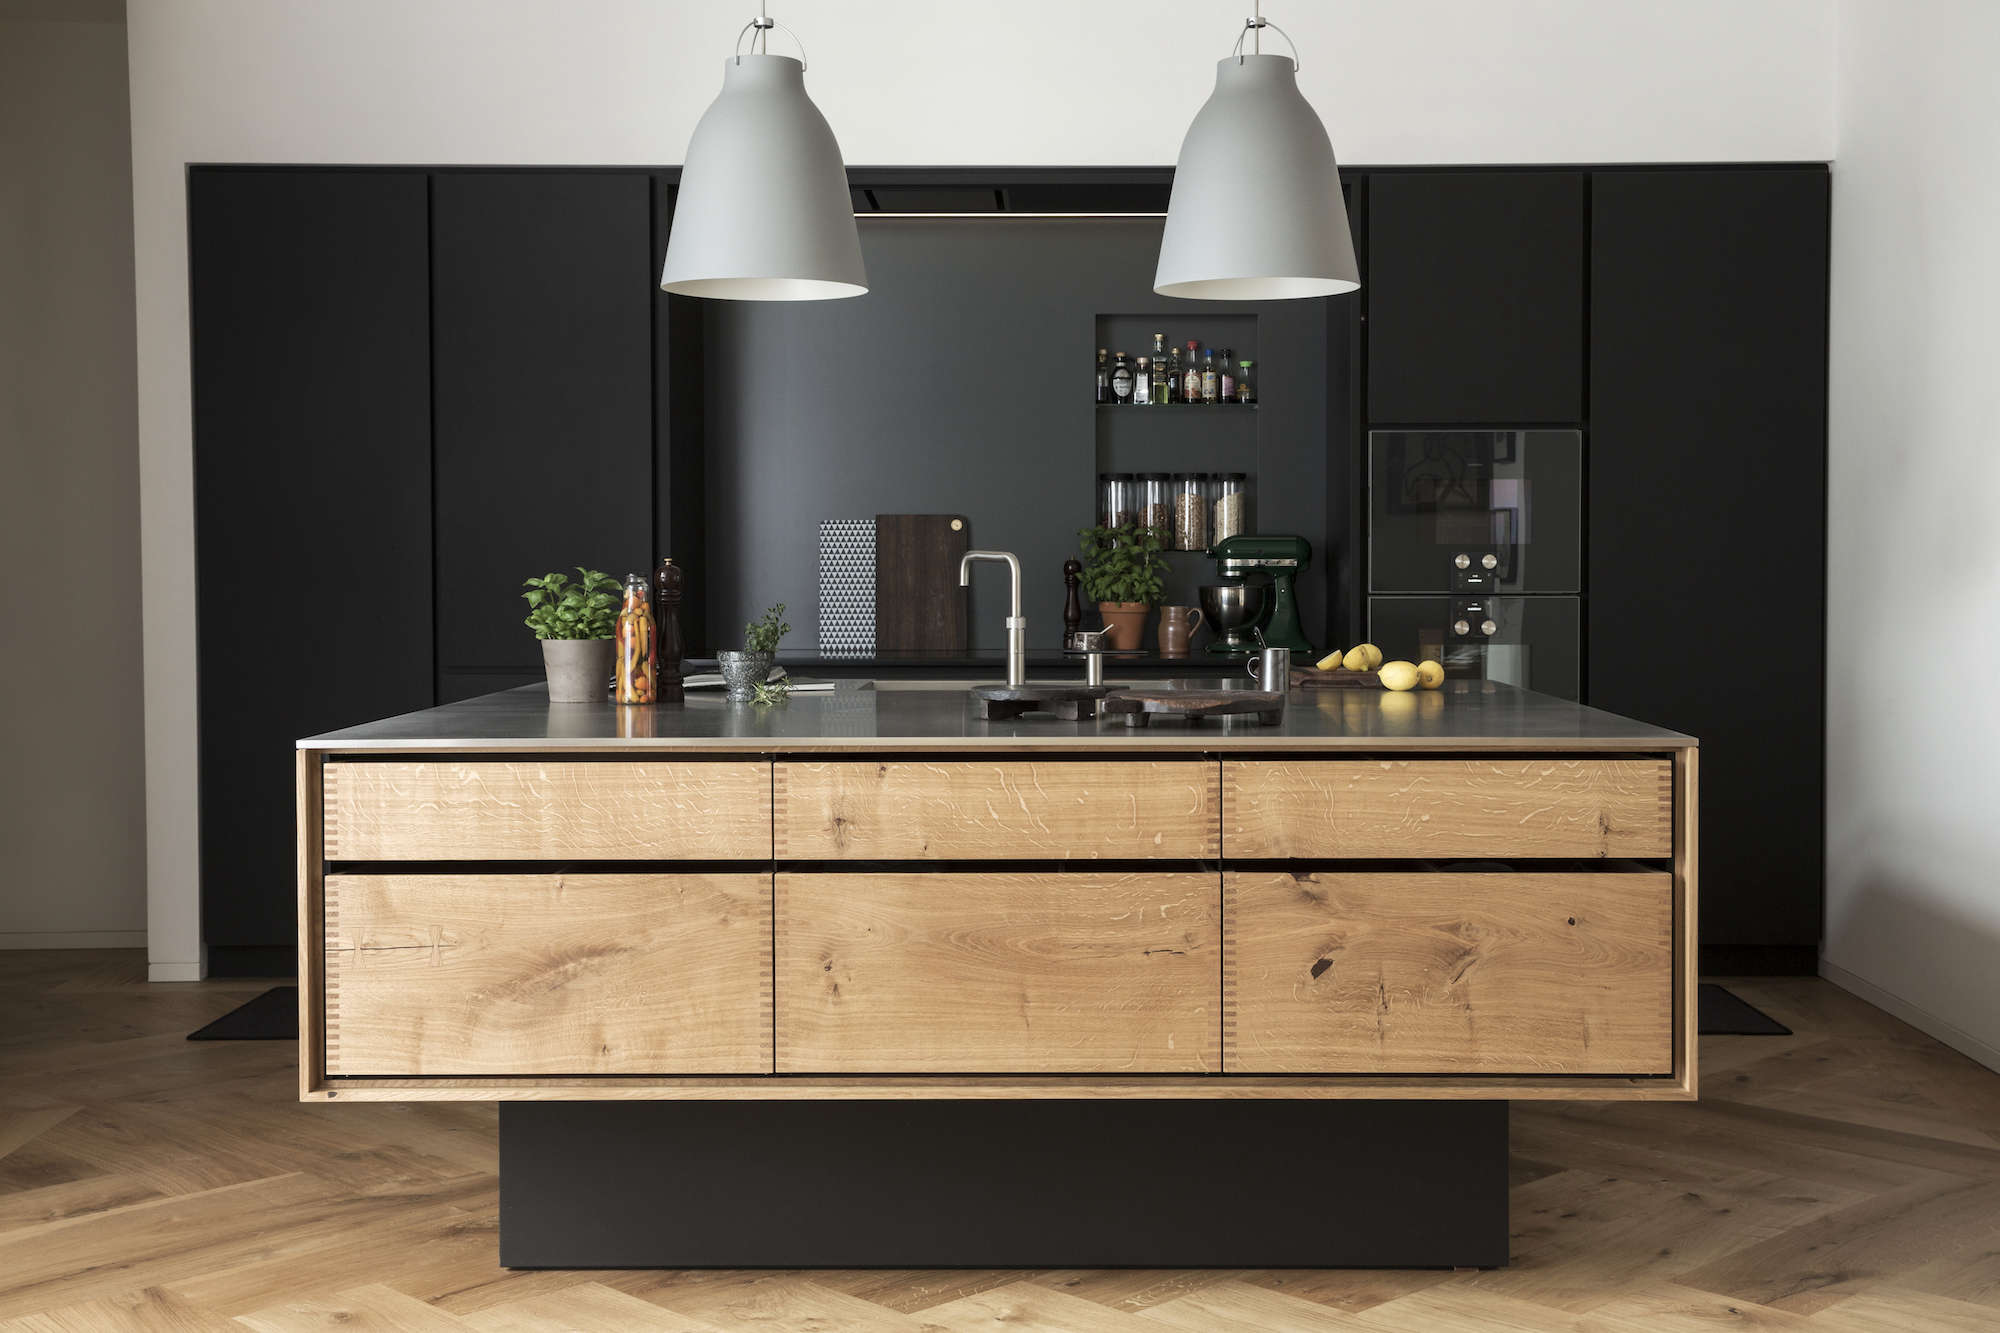 wood-island-kitchen-gray-pendant-lights-black-backsplash-denmark-garde-Hvalsoe